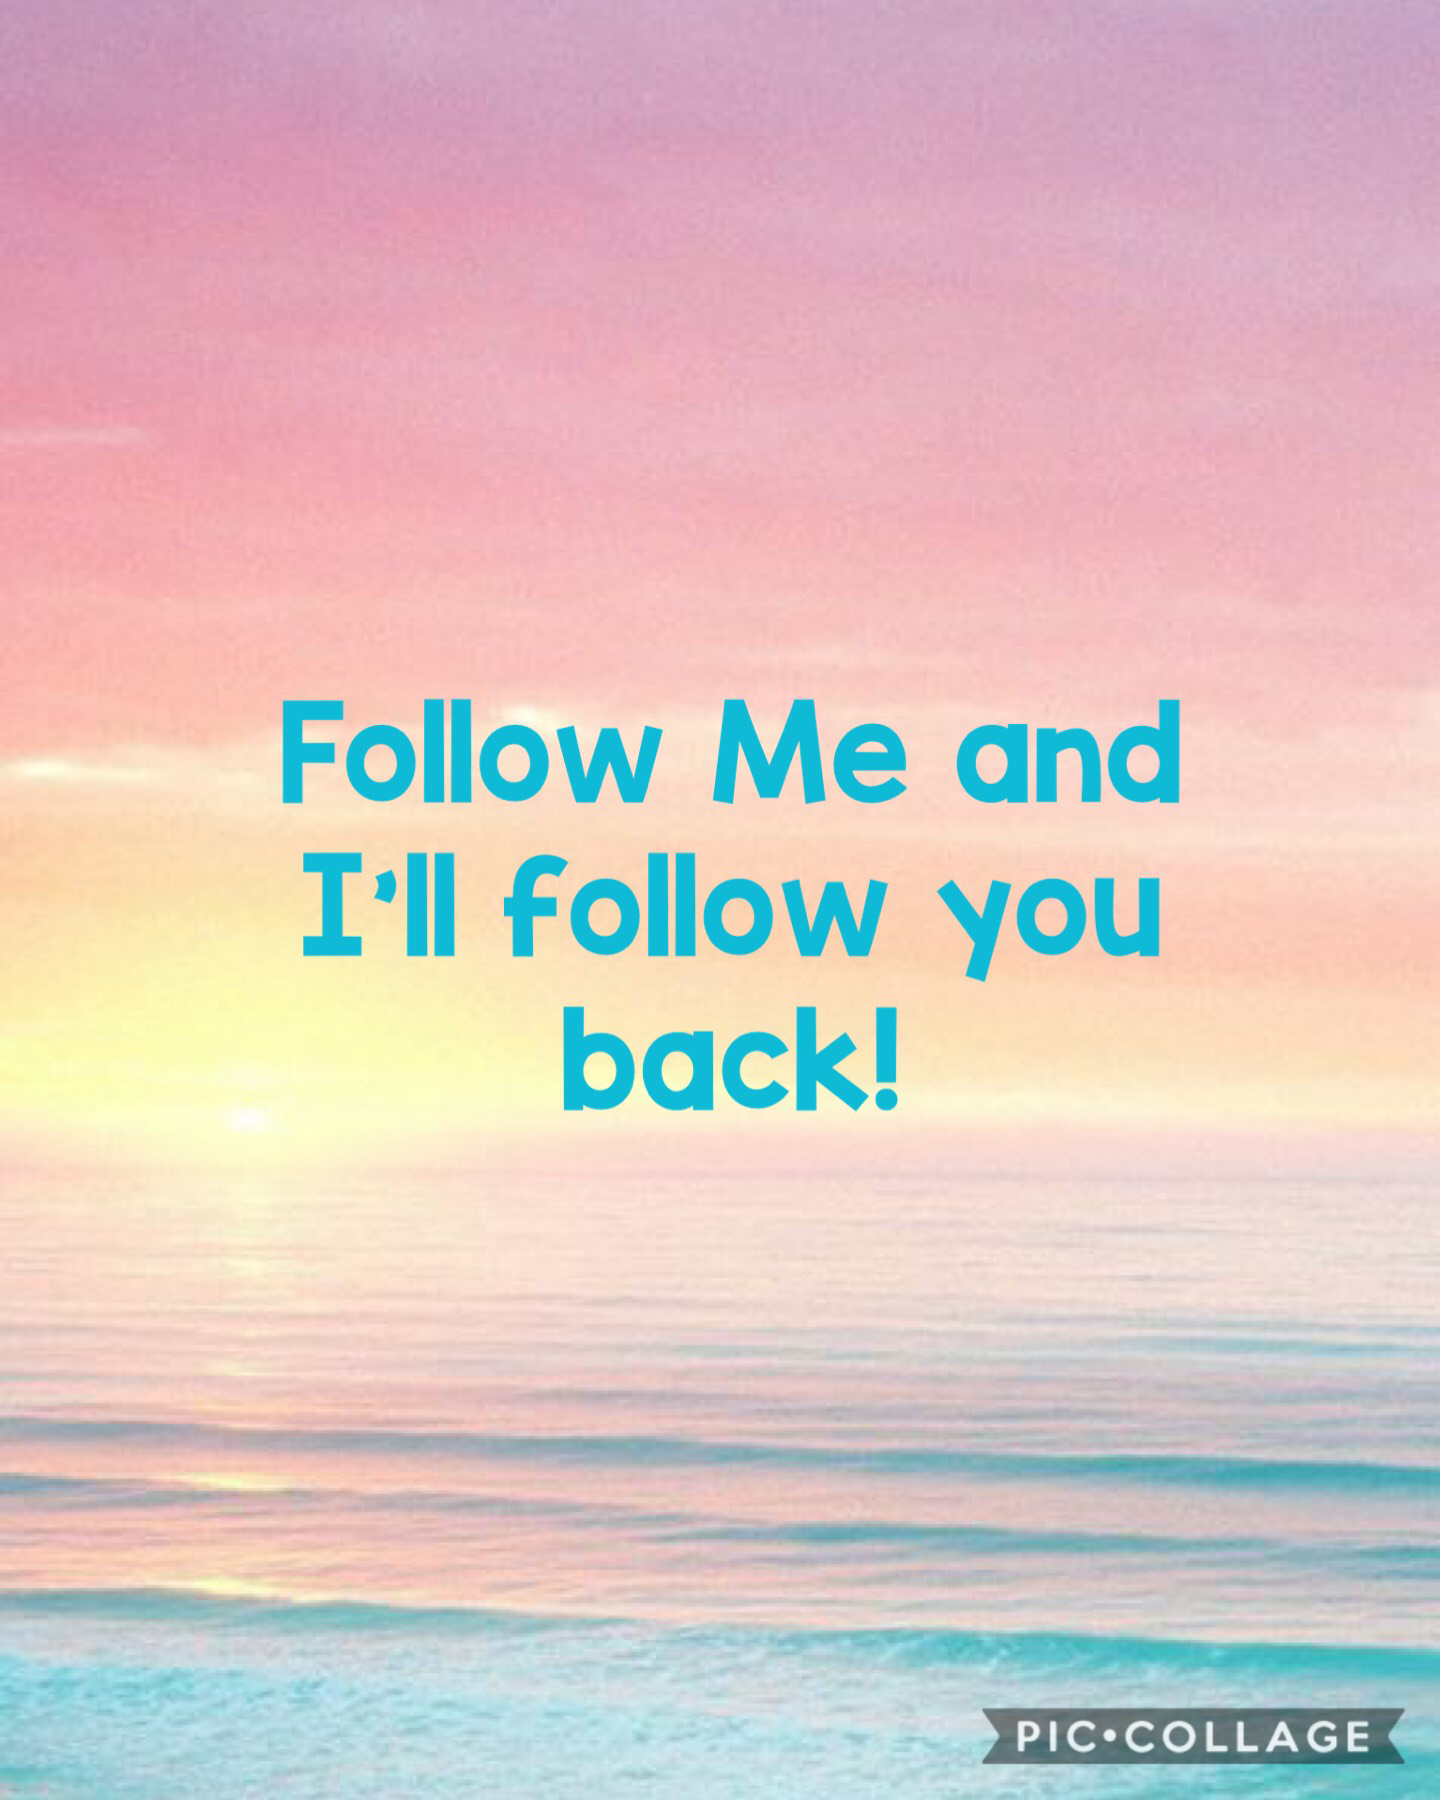 Follow me and I'll follow you back!